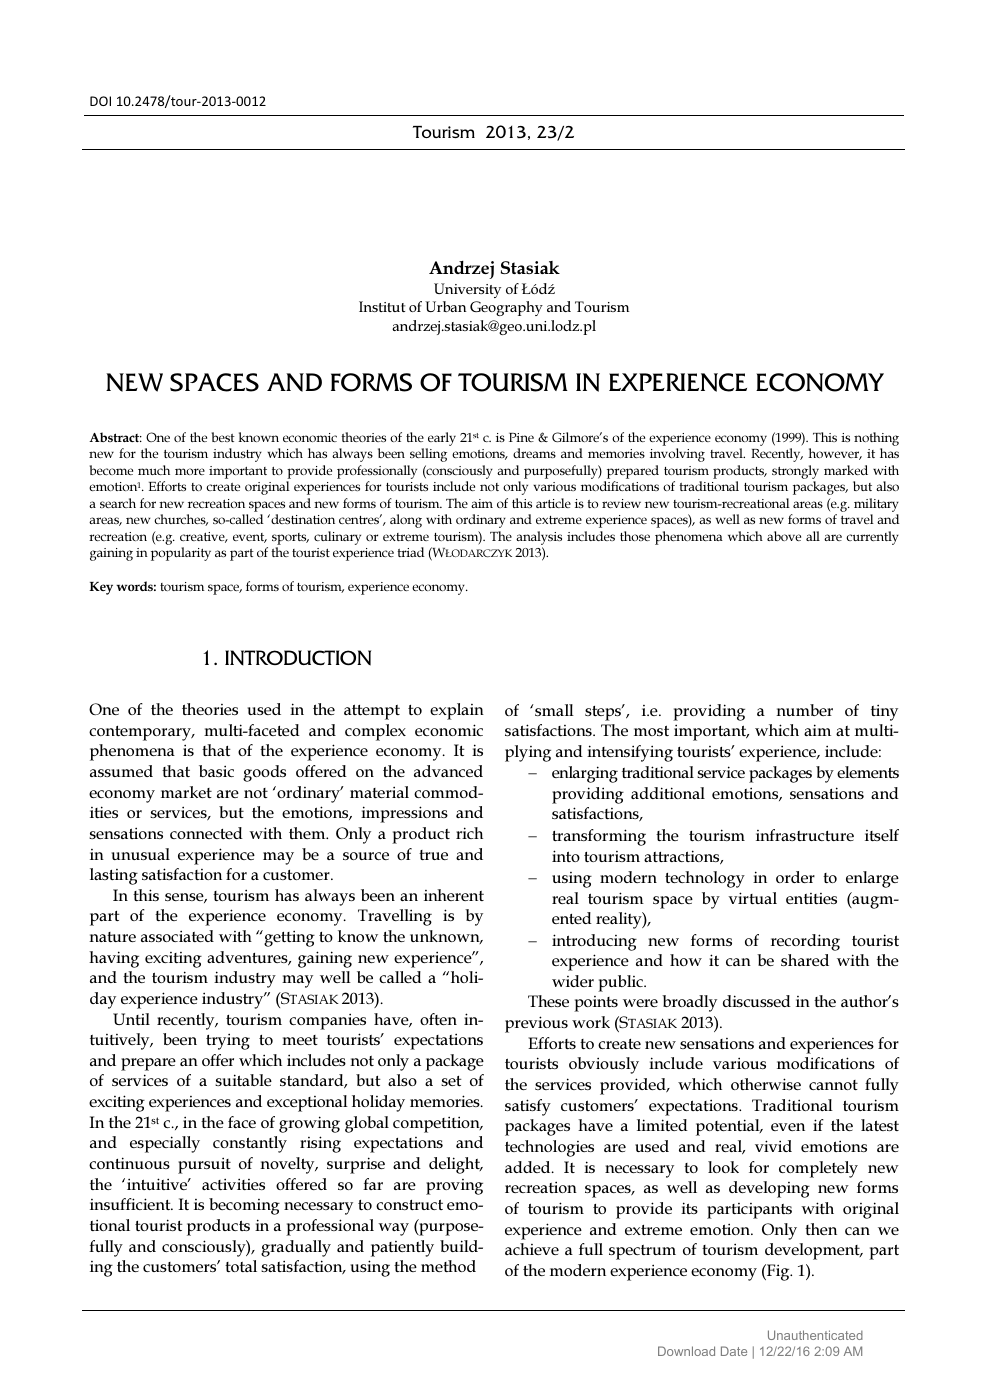 New Spaces and Forms of Tourism in Experience Economy